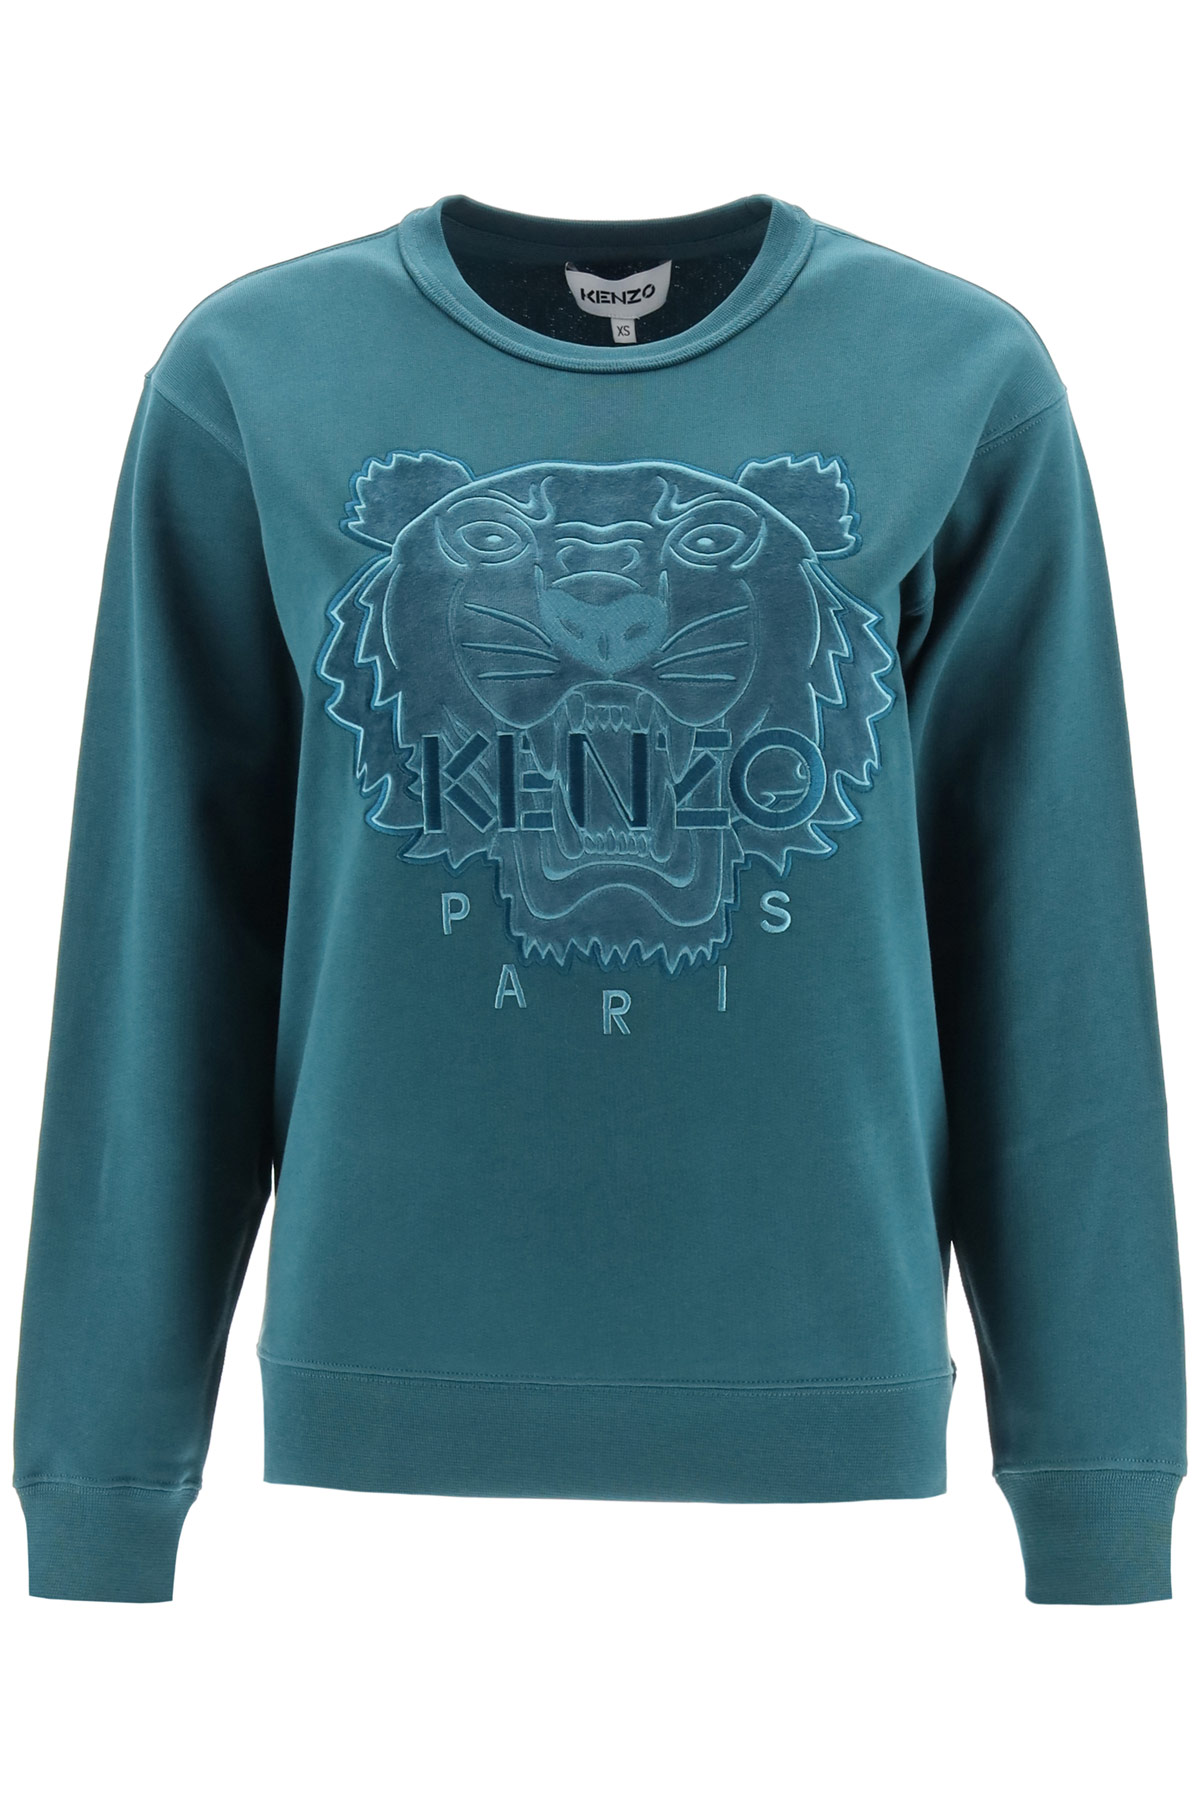 KENZO HOODED SWEATSHIRT TIGER VELVET PATCH XXS Blue Cotton